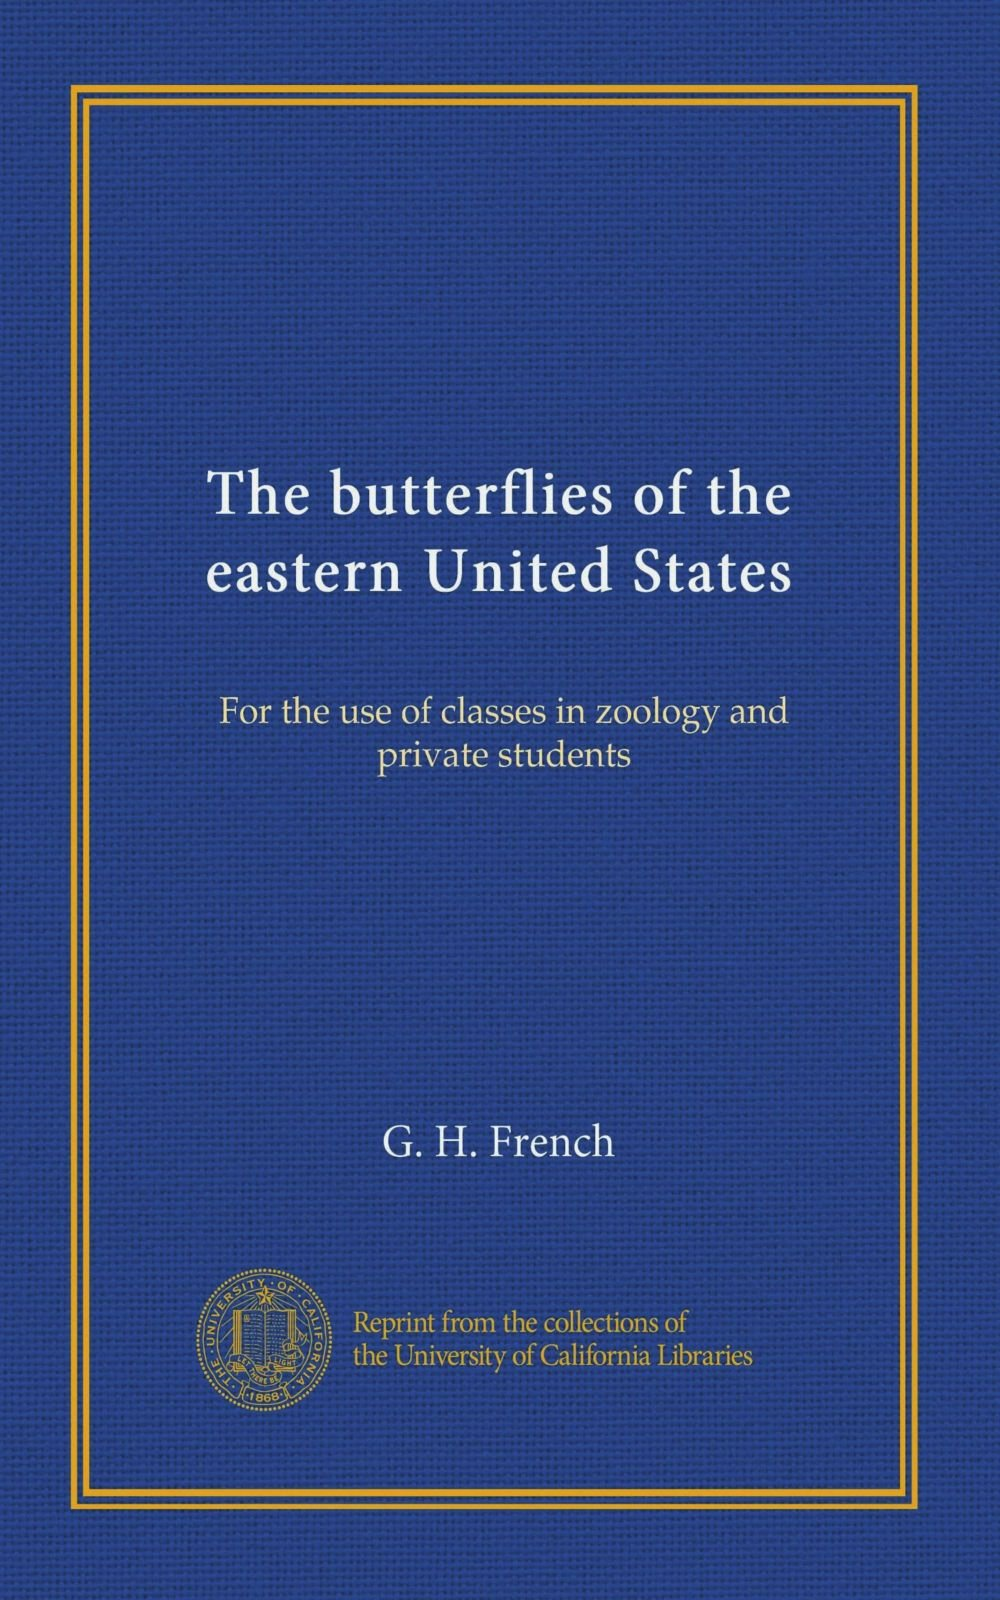 The butterflies of the eastern United States: For the use of classes in zoology and private students ebook